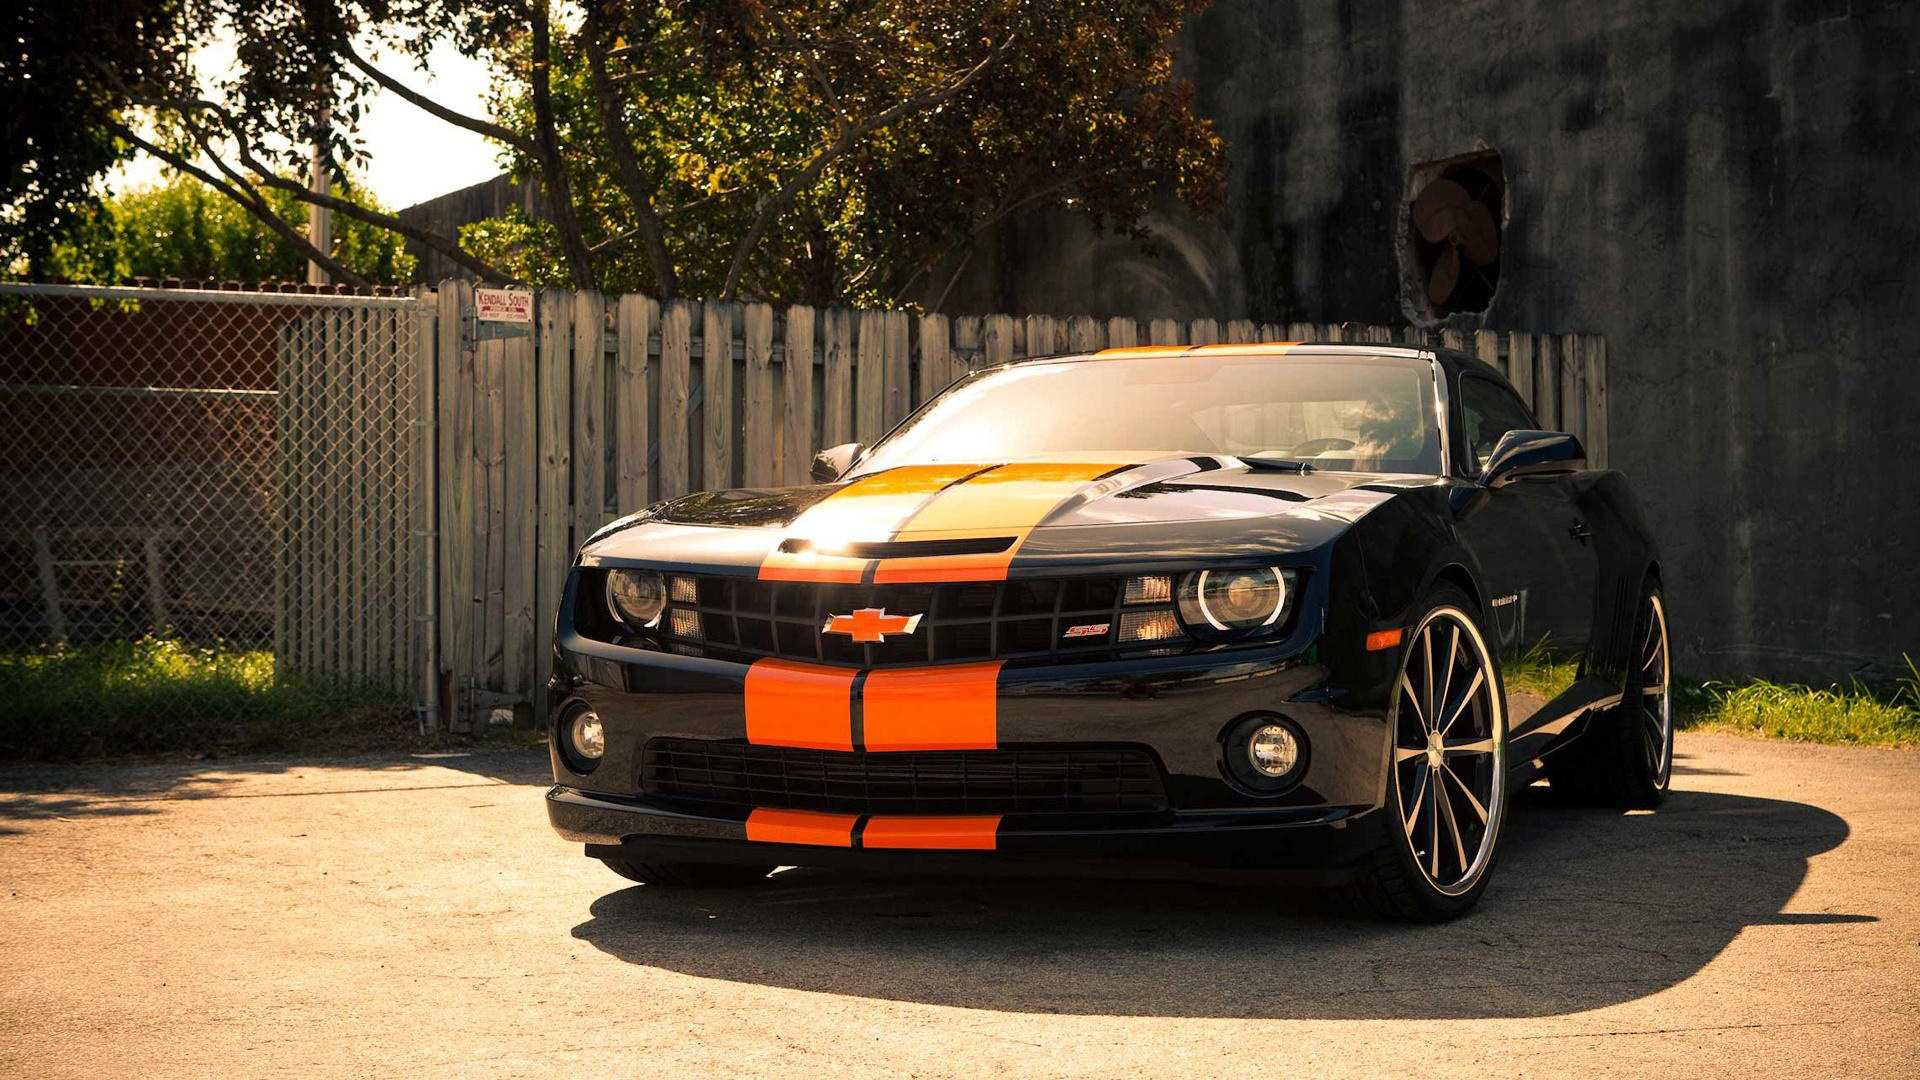 There are no other resolutions th. Full Hd Wallpapers 1080p Cars Free Download Pixelstalk Net